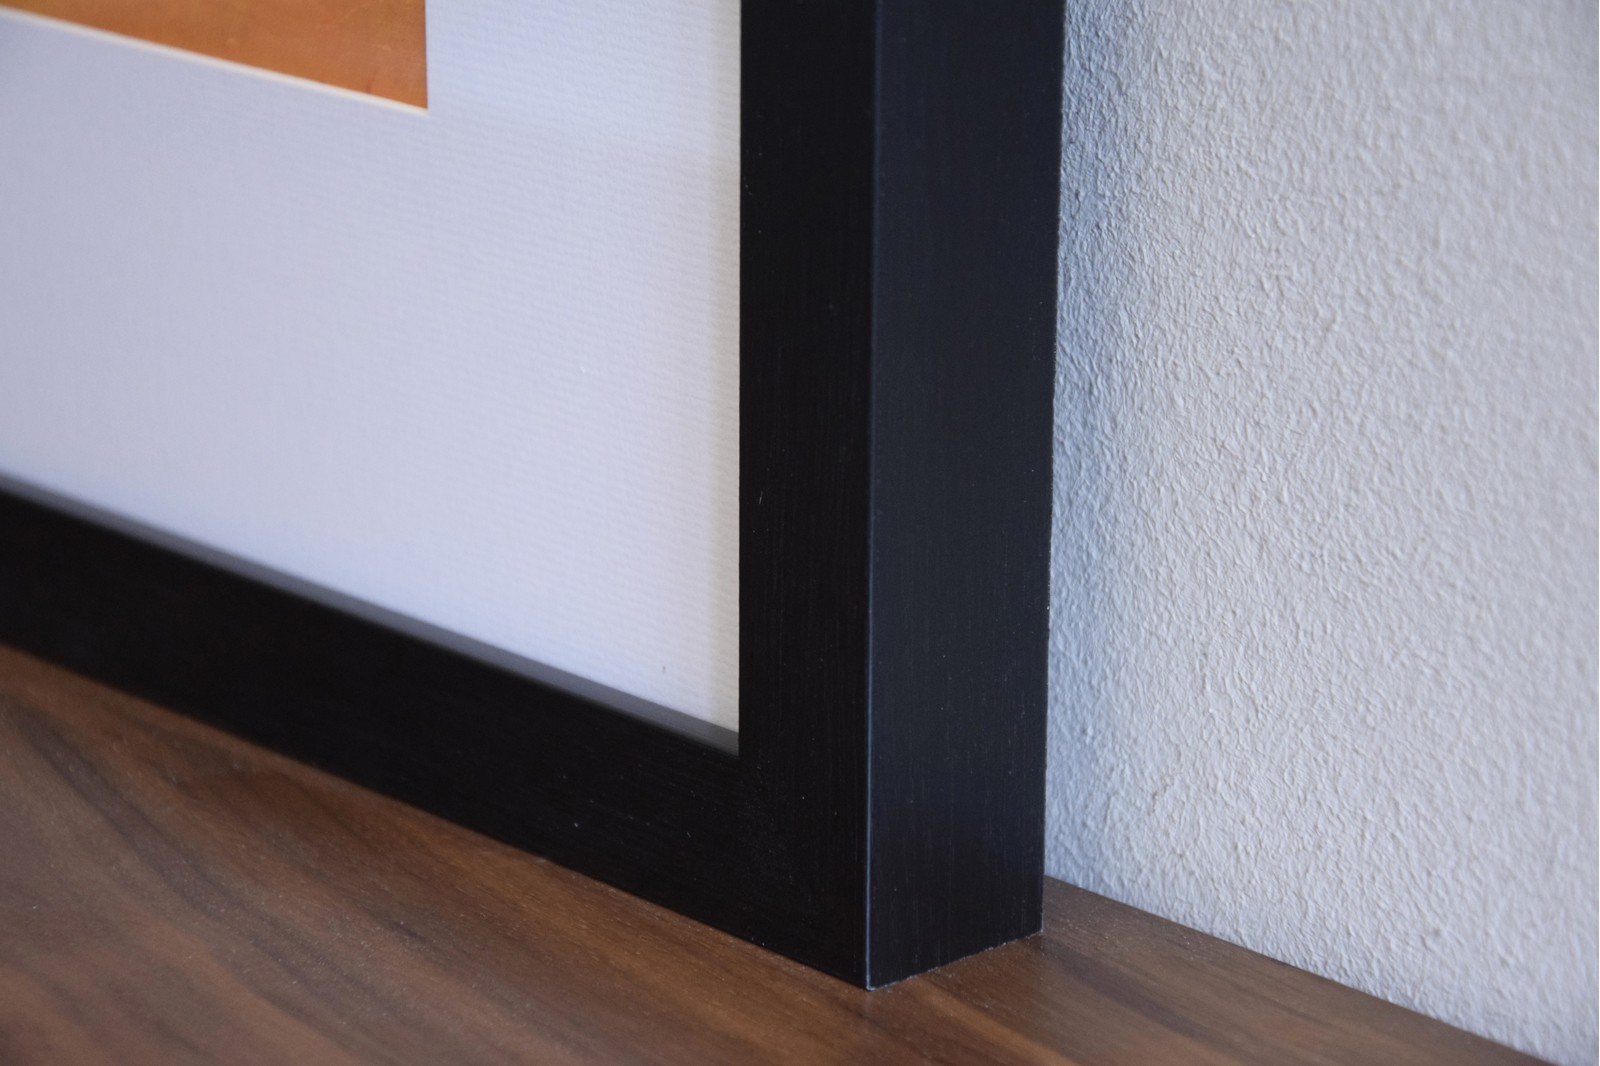 ABSTRACT PAINTING ON PAPER WITH FRAME